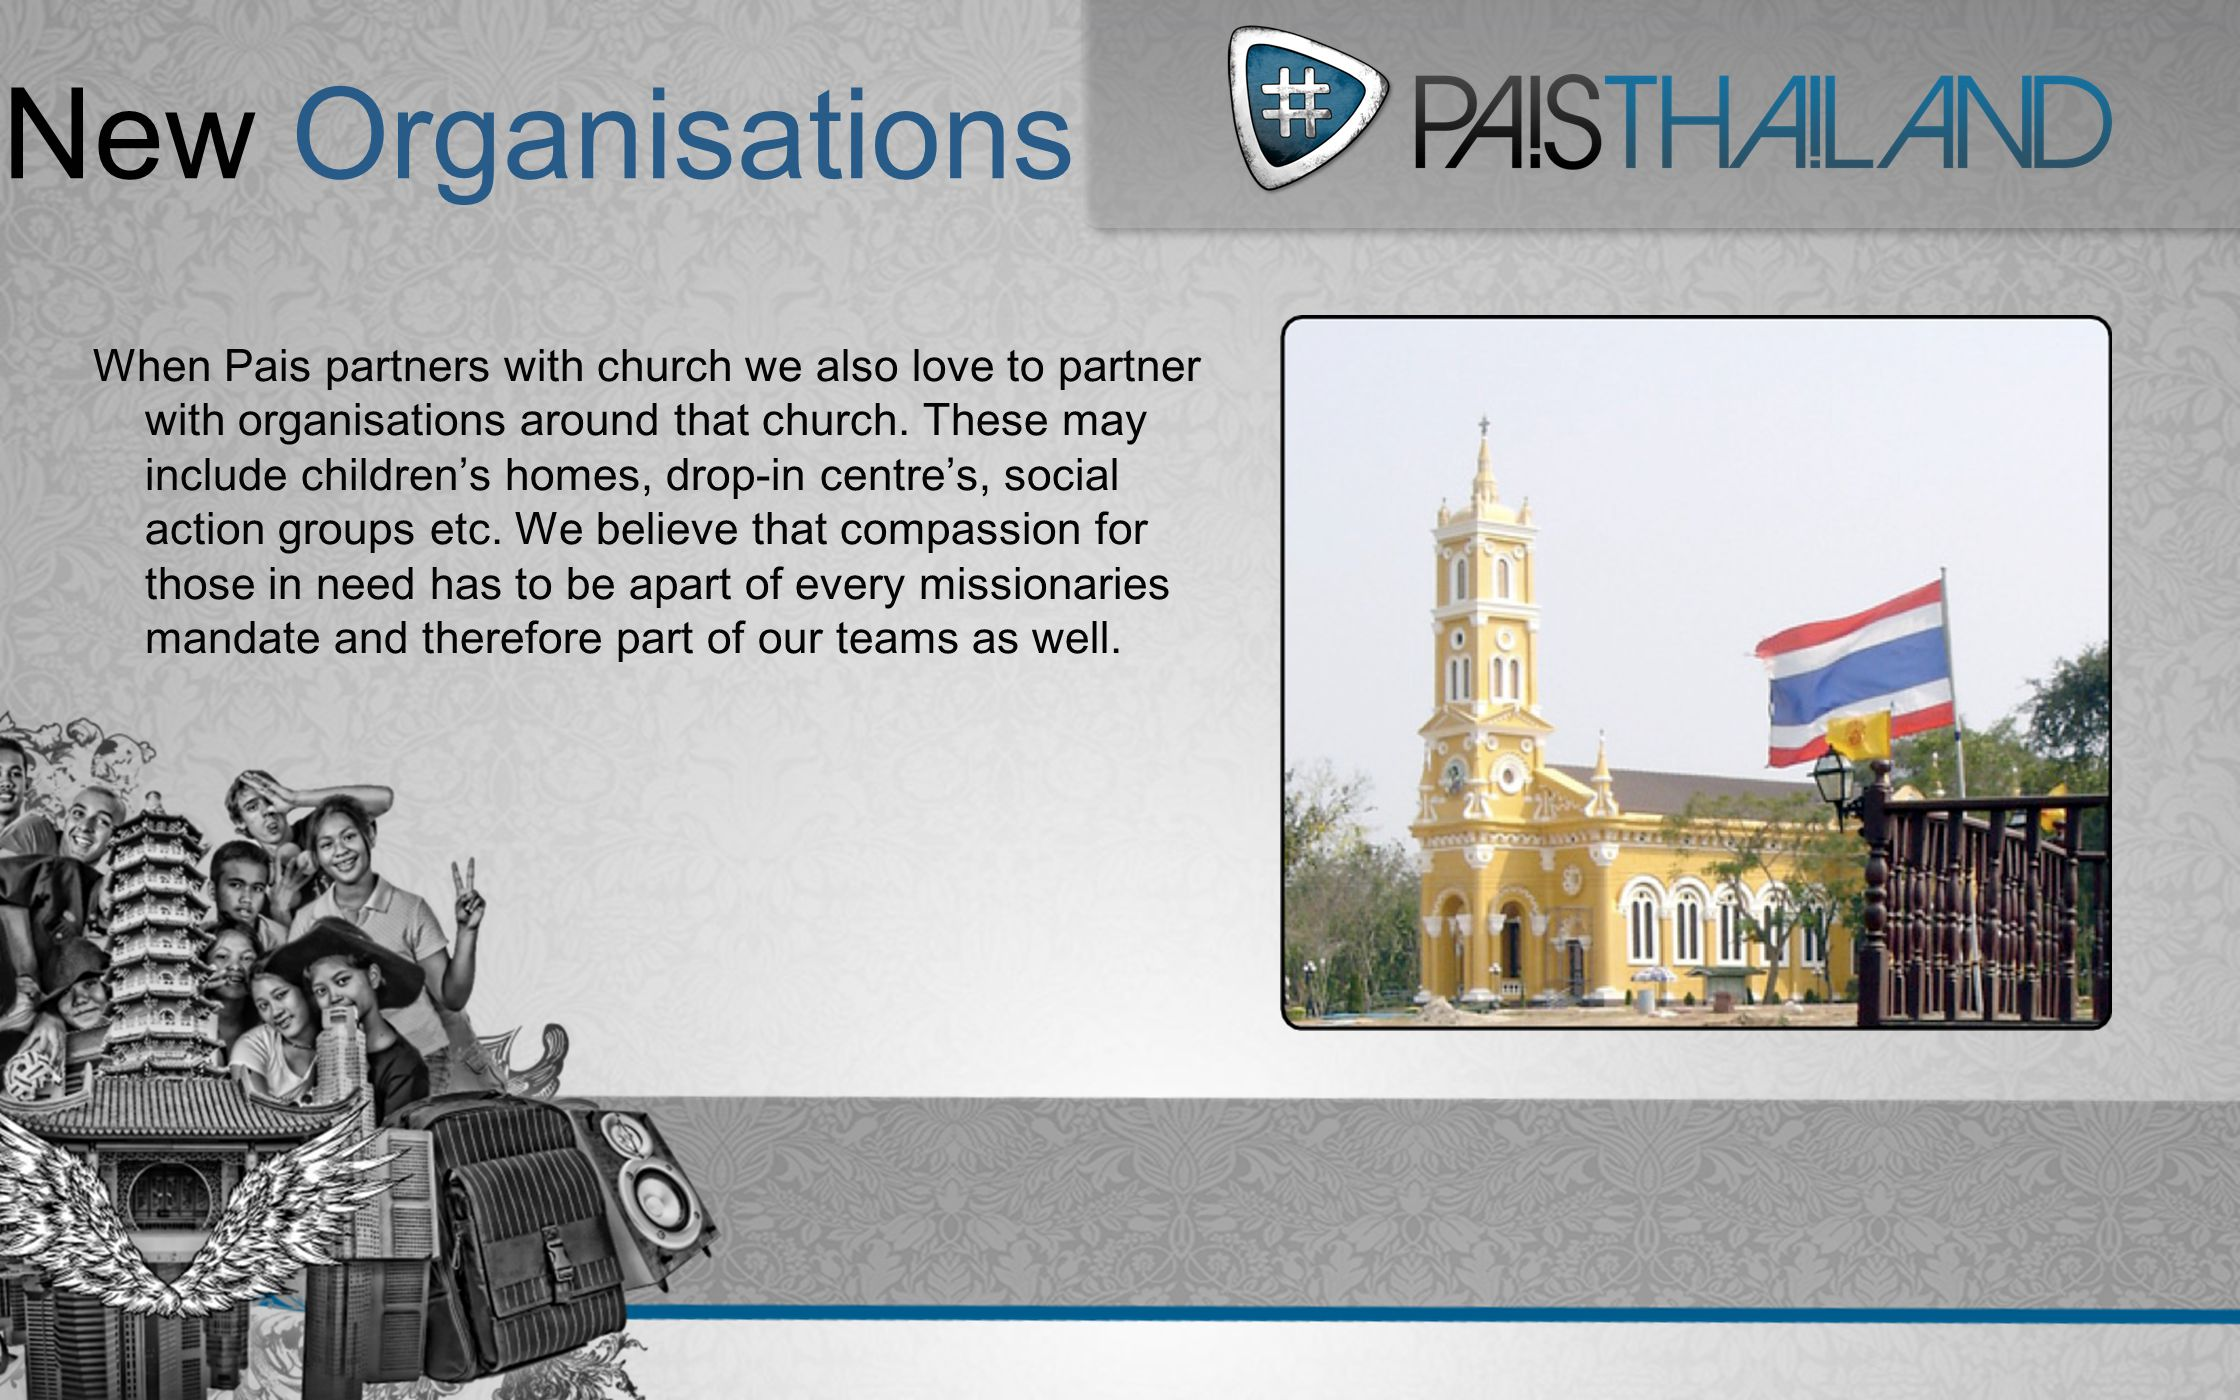 When Pais partners with church we also love to partner with organisations around that church.